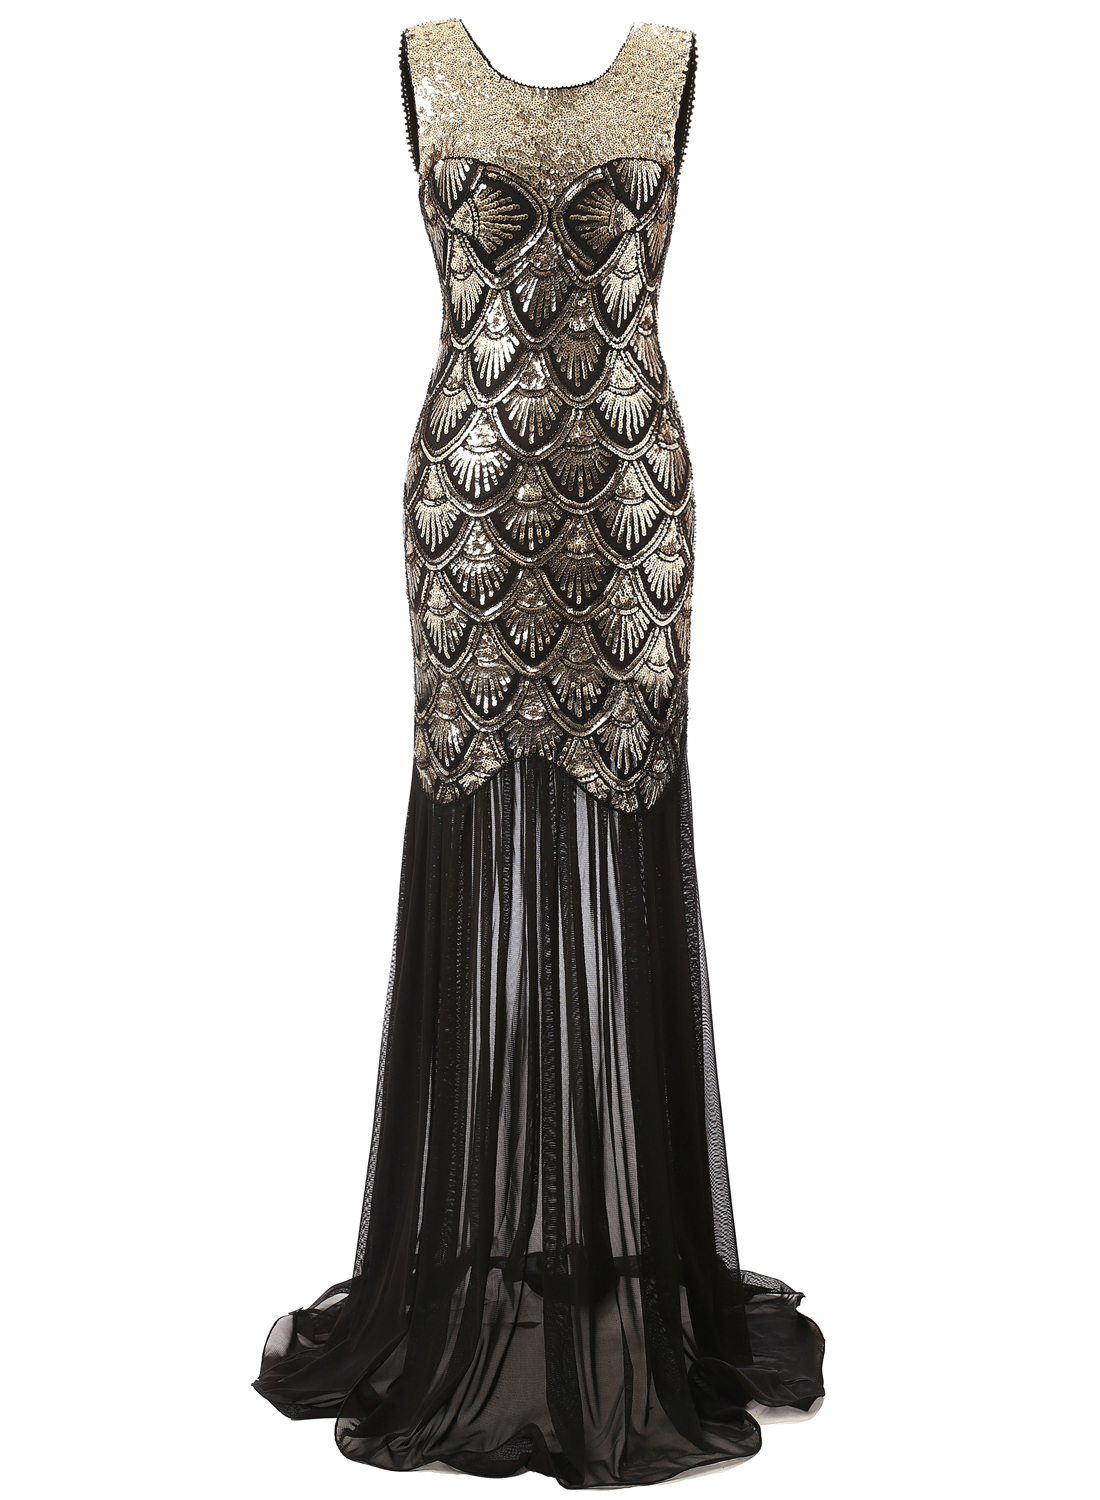 Vintage 20s Style Gatsby Black Long Cocktail Party Evening Mermaid Prom Dress